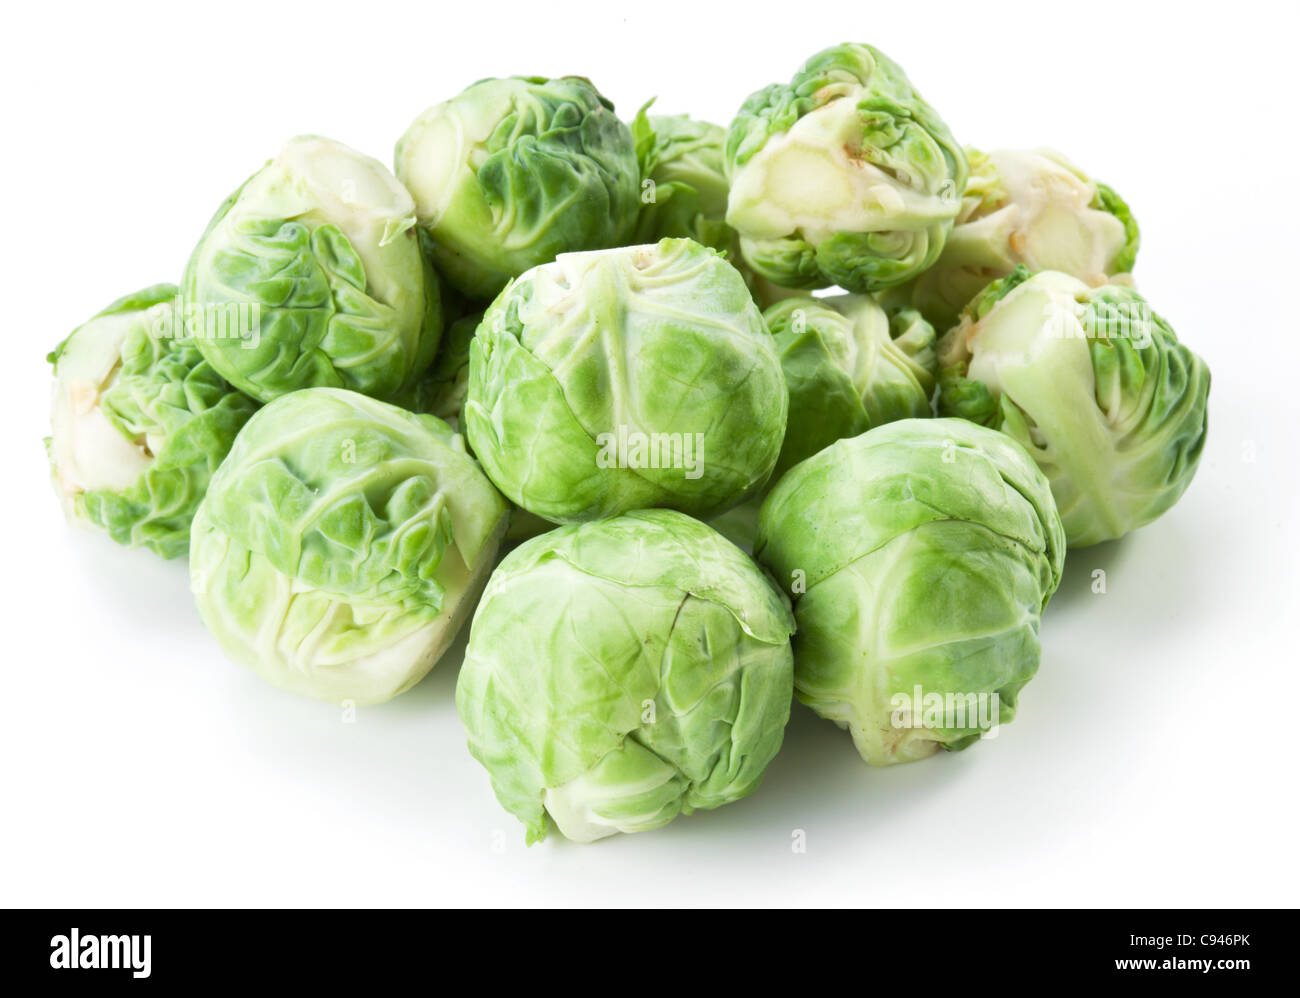 Lot of brussels sprouts isolated on a white background. - Stock Image